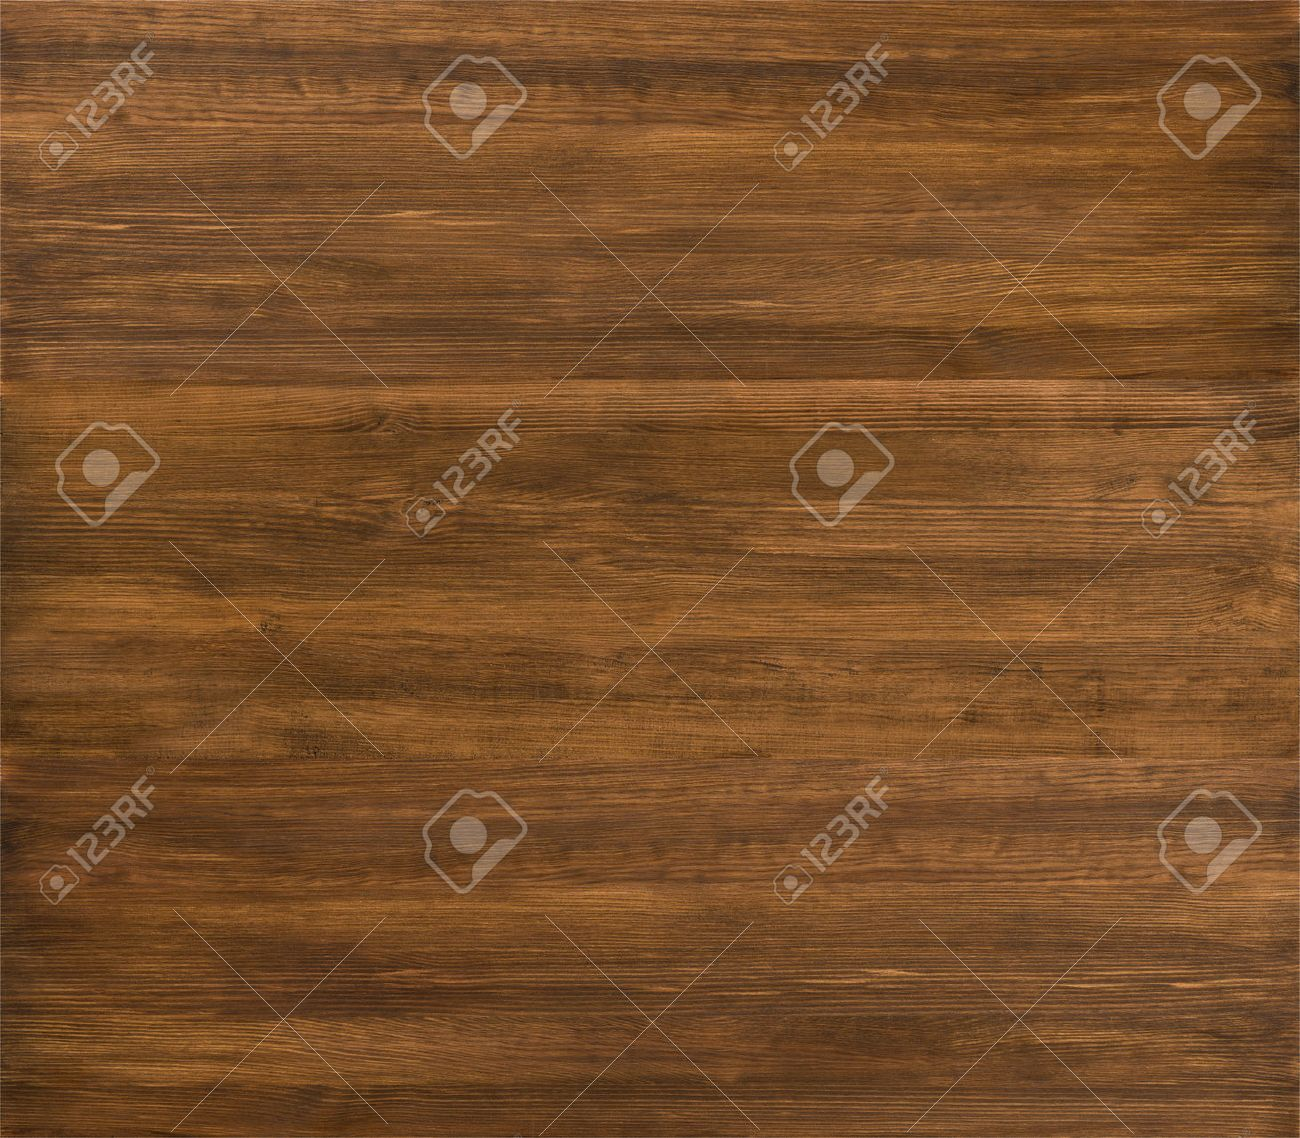 Wooden Texture Dark Brown Wood Background Stock Photo Picture And